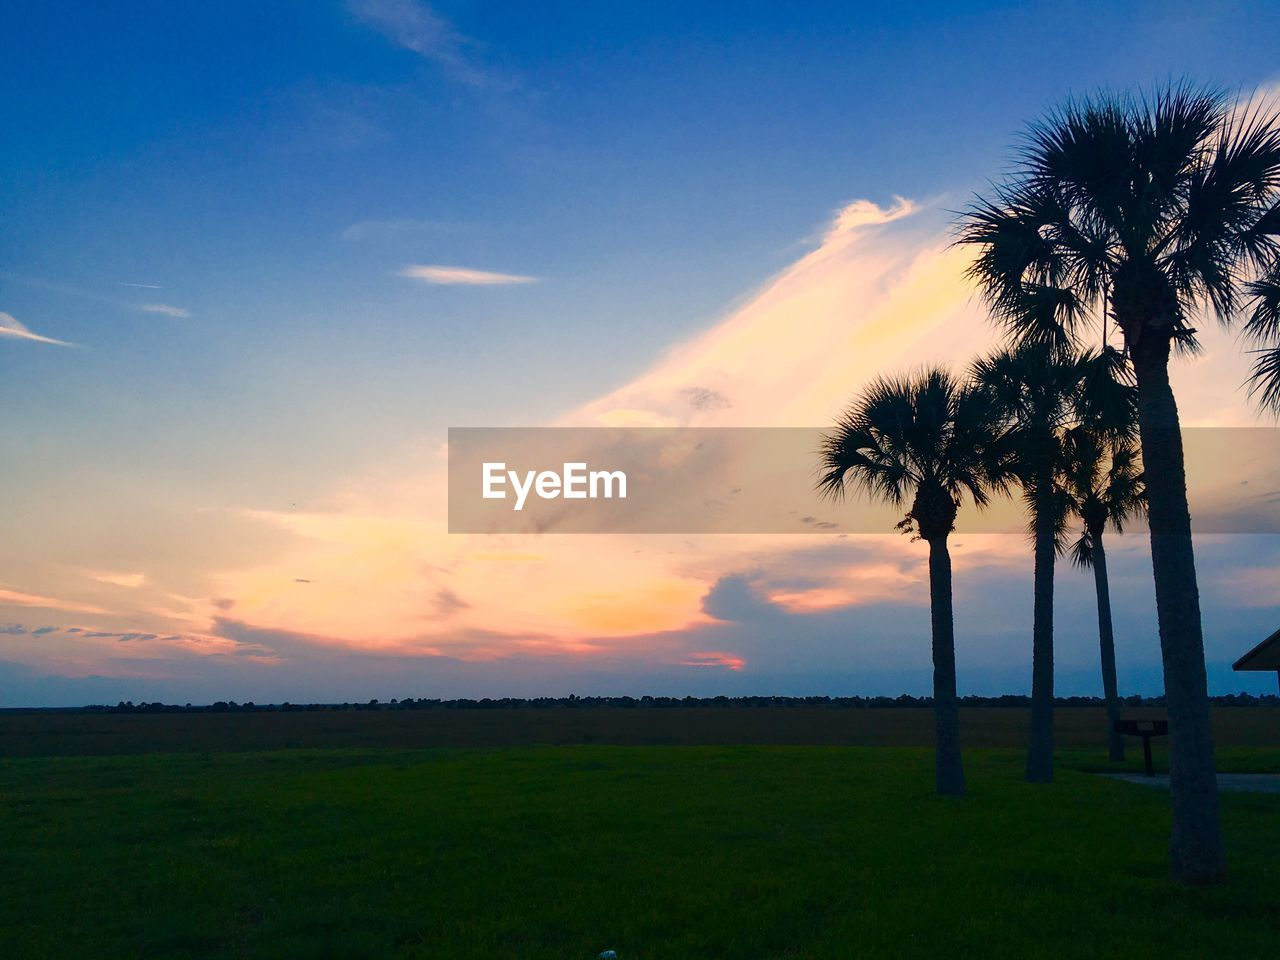 sunset, palm tree, beauty in nature, tree, scenics, nature, tranquility, tranquil scene, sky, tree trunk, idyllic, landscape, grass, silhouette, no people, cloud - sky, outdoors, growth, travel destinations, day